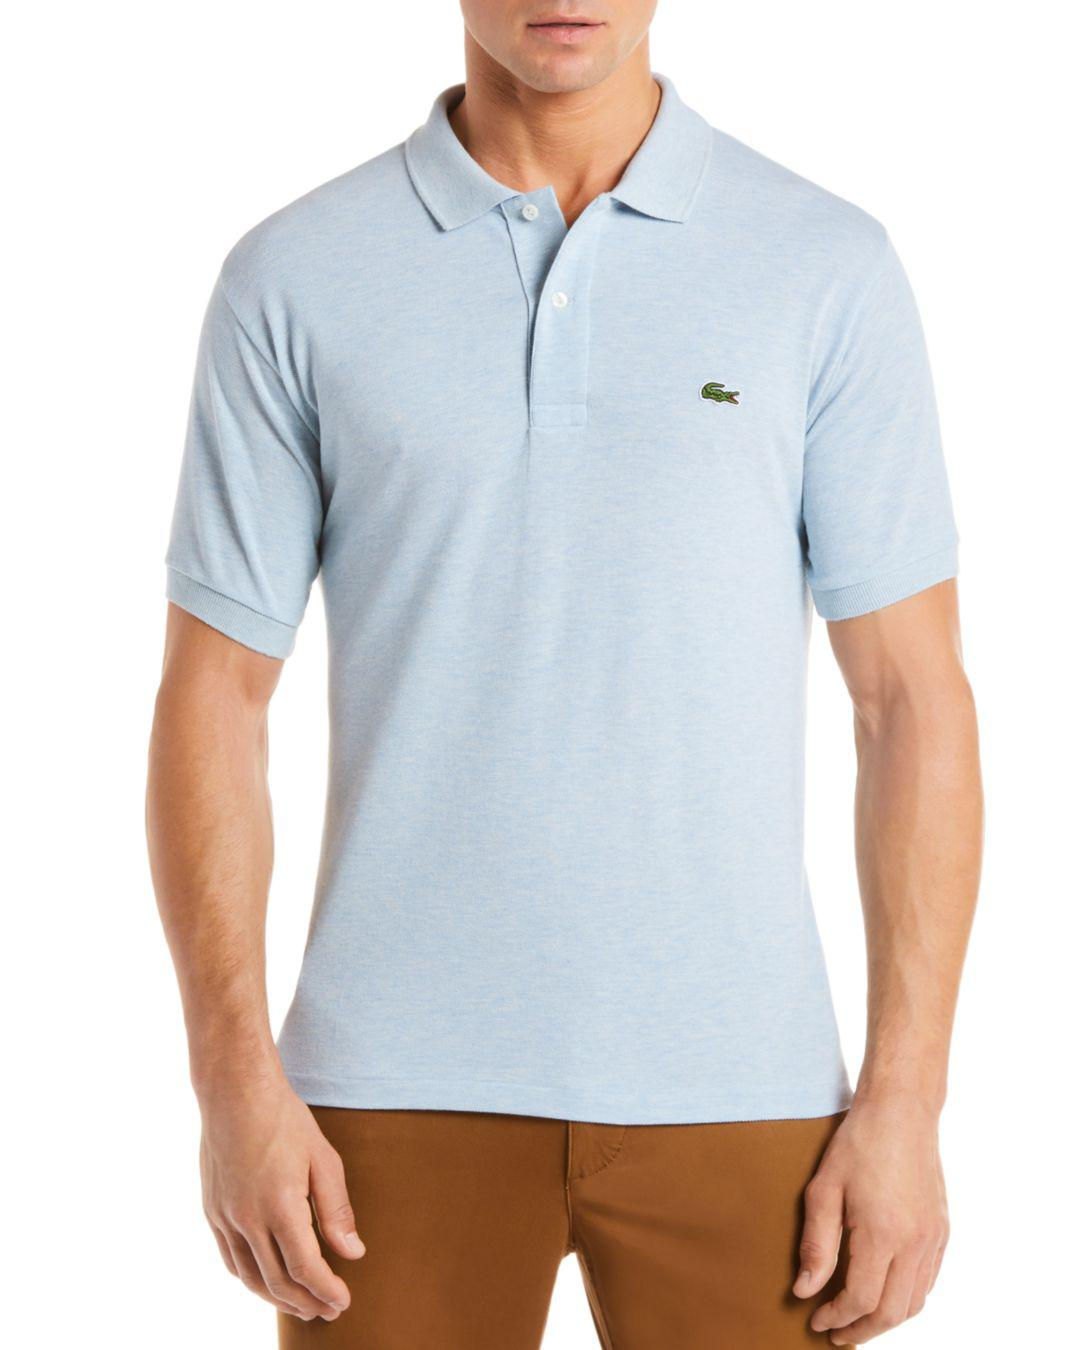 4f948938d Lacoste Pique Polo - Classic Fit in Blue for Men - Lyst